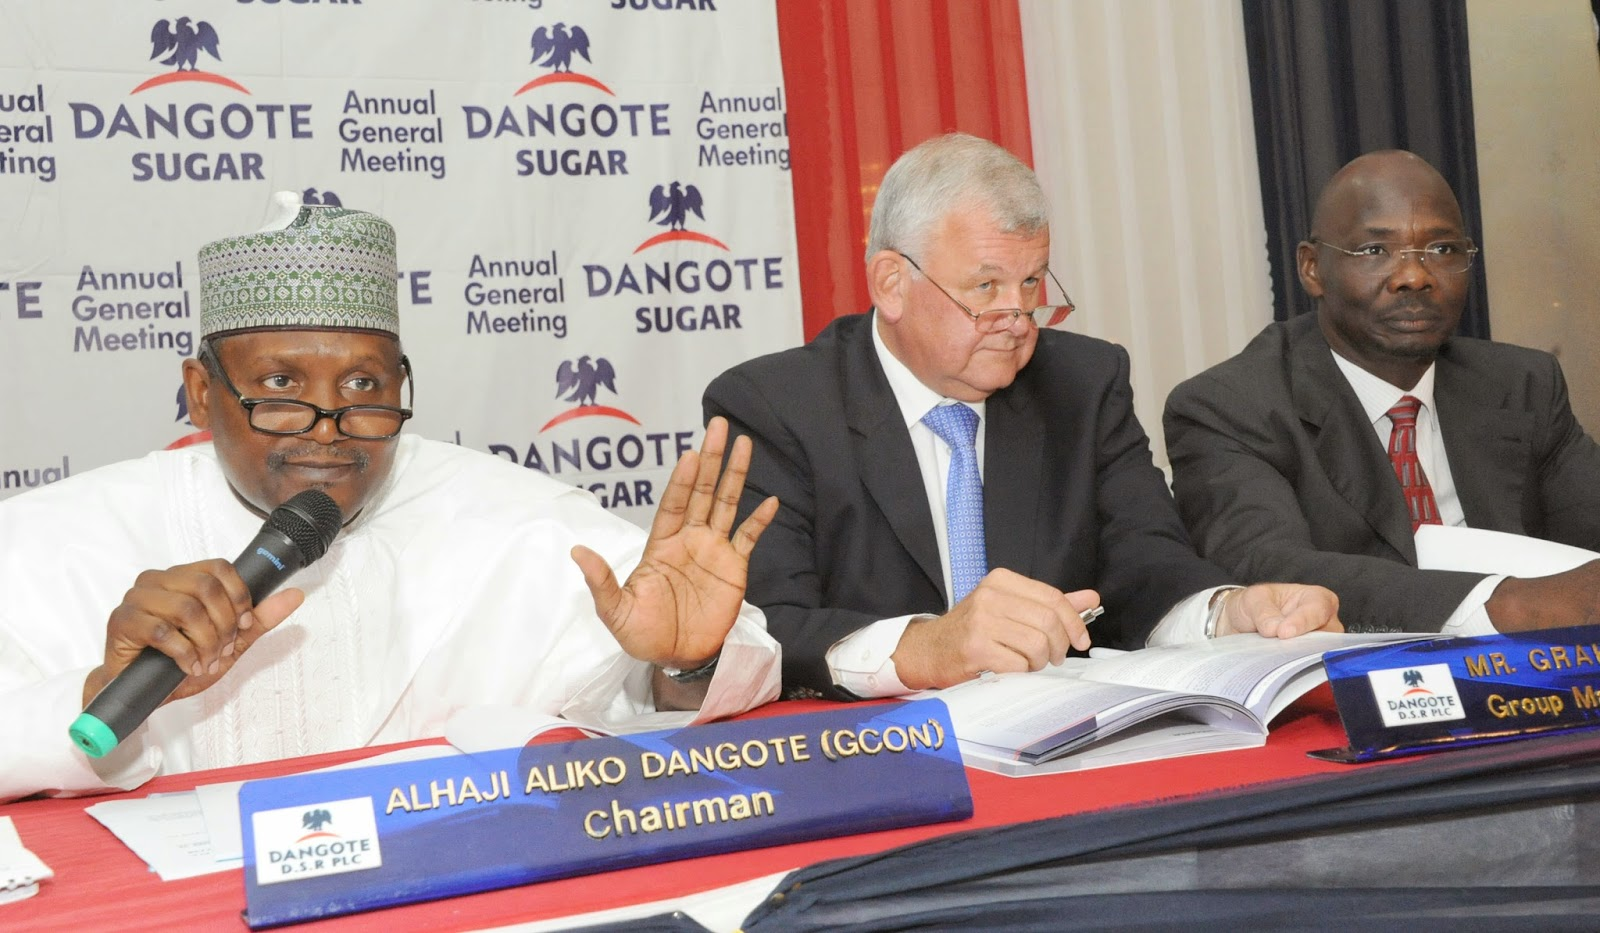 Aliko explains why Dangote Sugar reduced its dividend this year